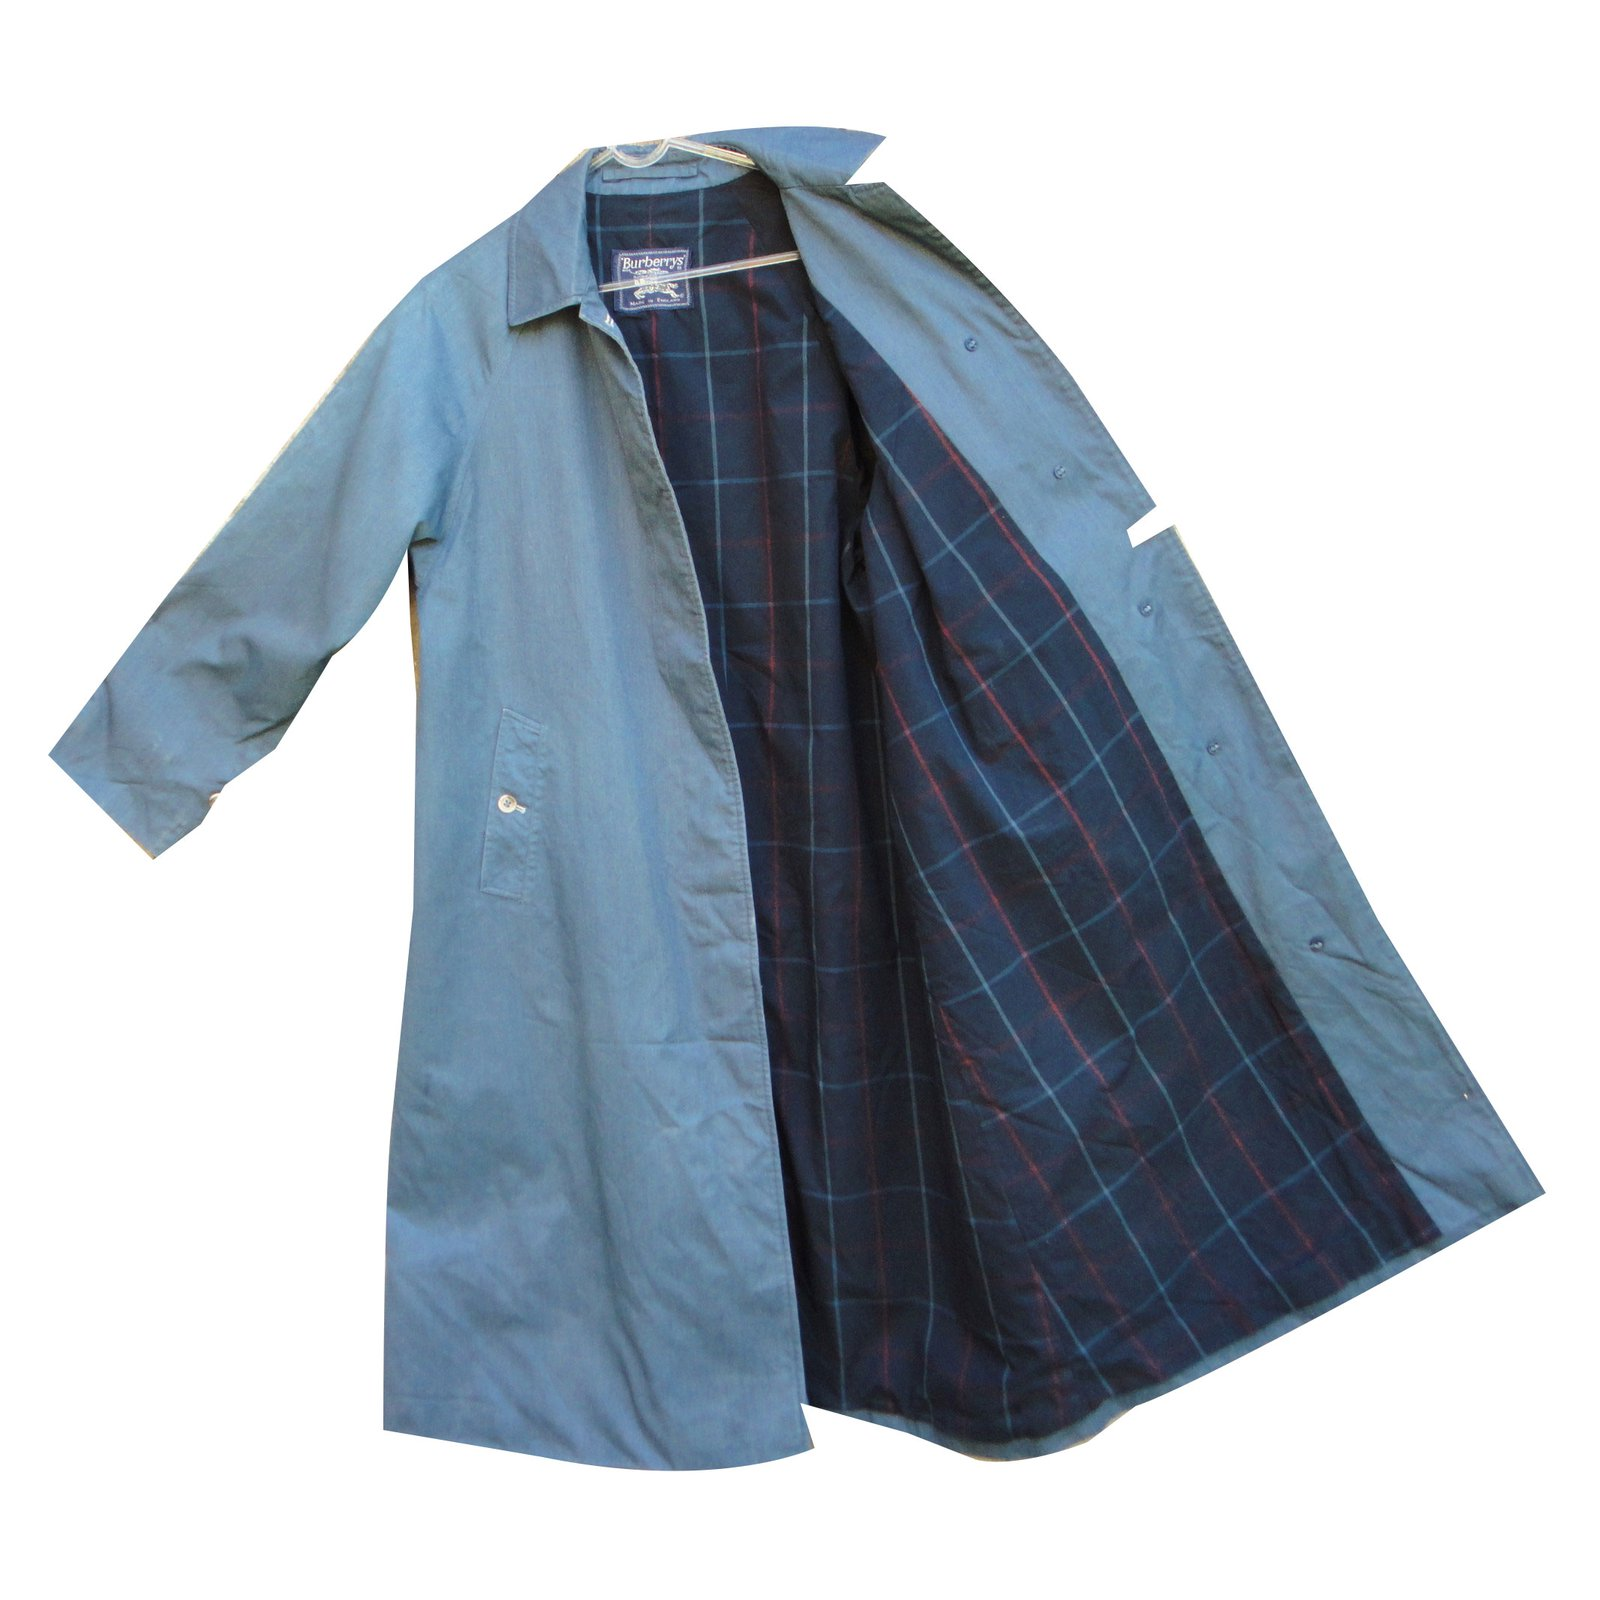 3ac688ce168 Burberry trench coat coats outerwear cotton blue ref joli jpg 1600x1600 Burberry  blue